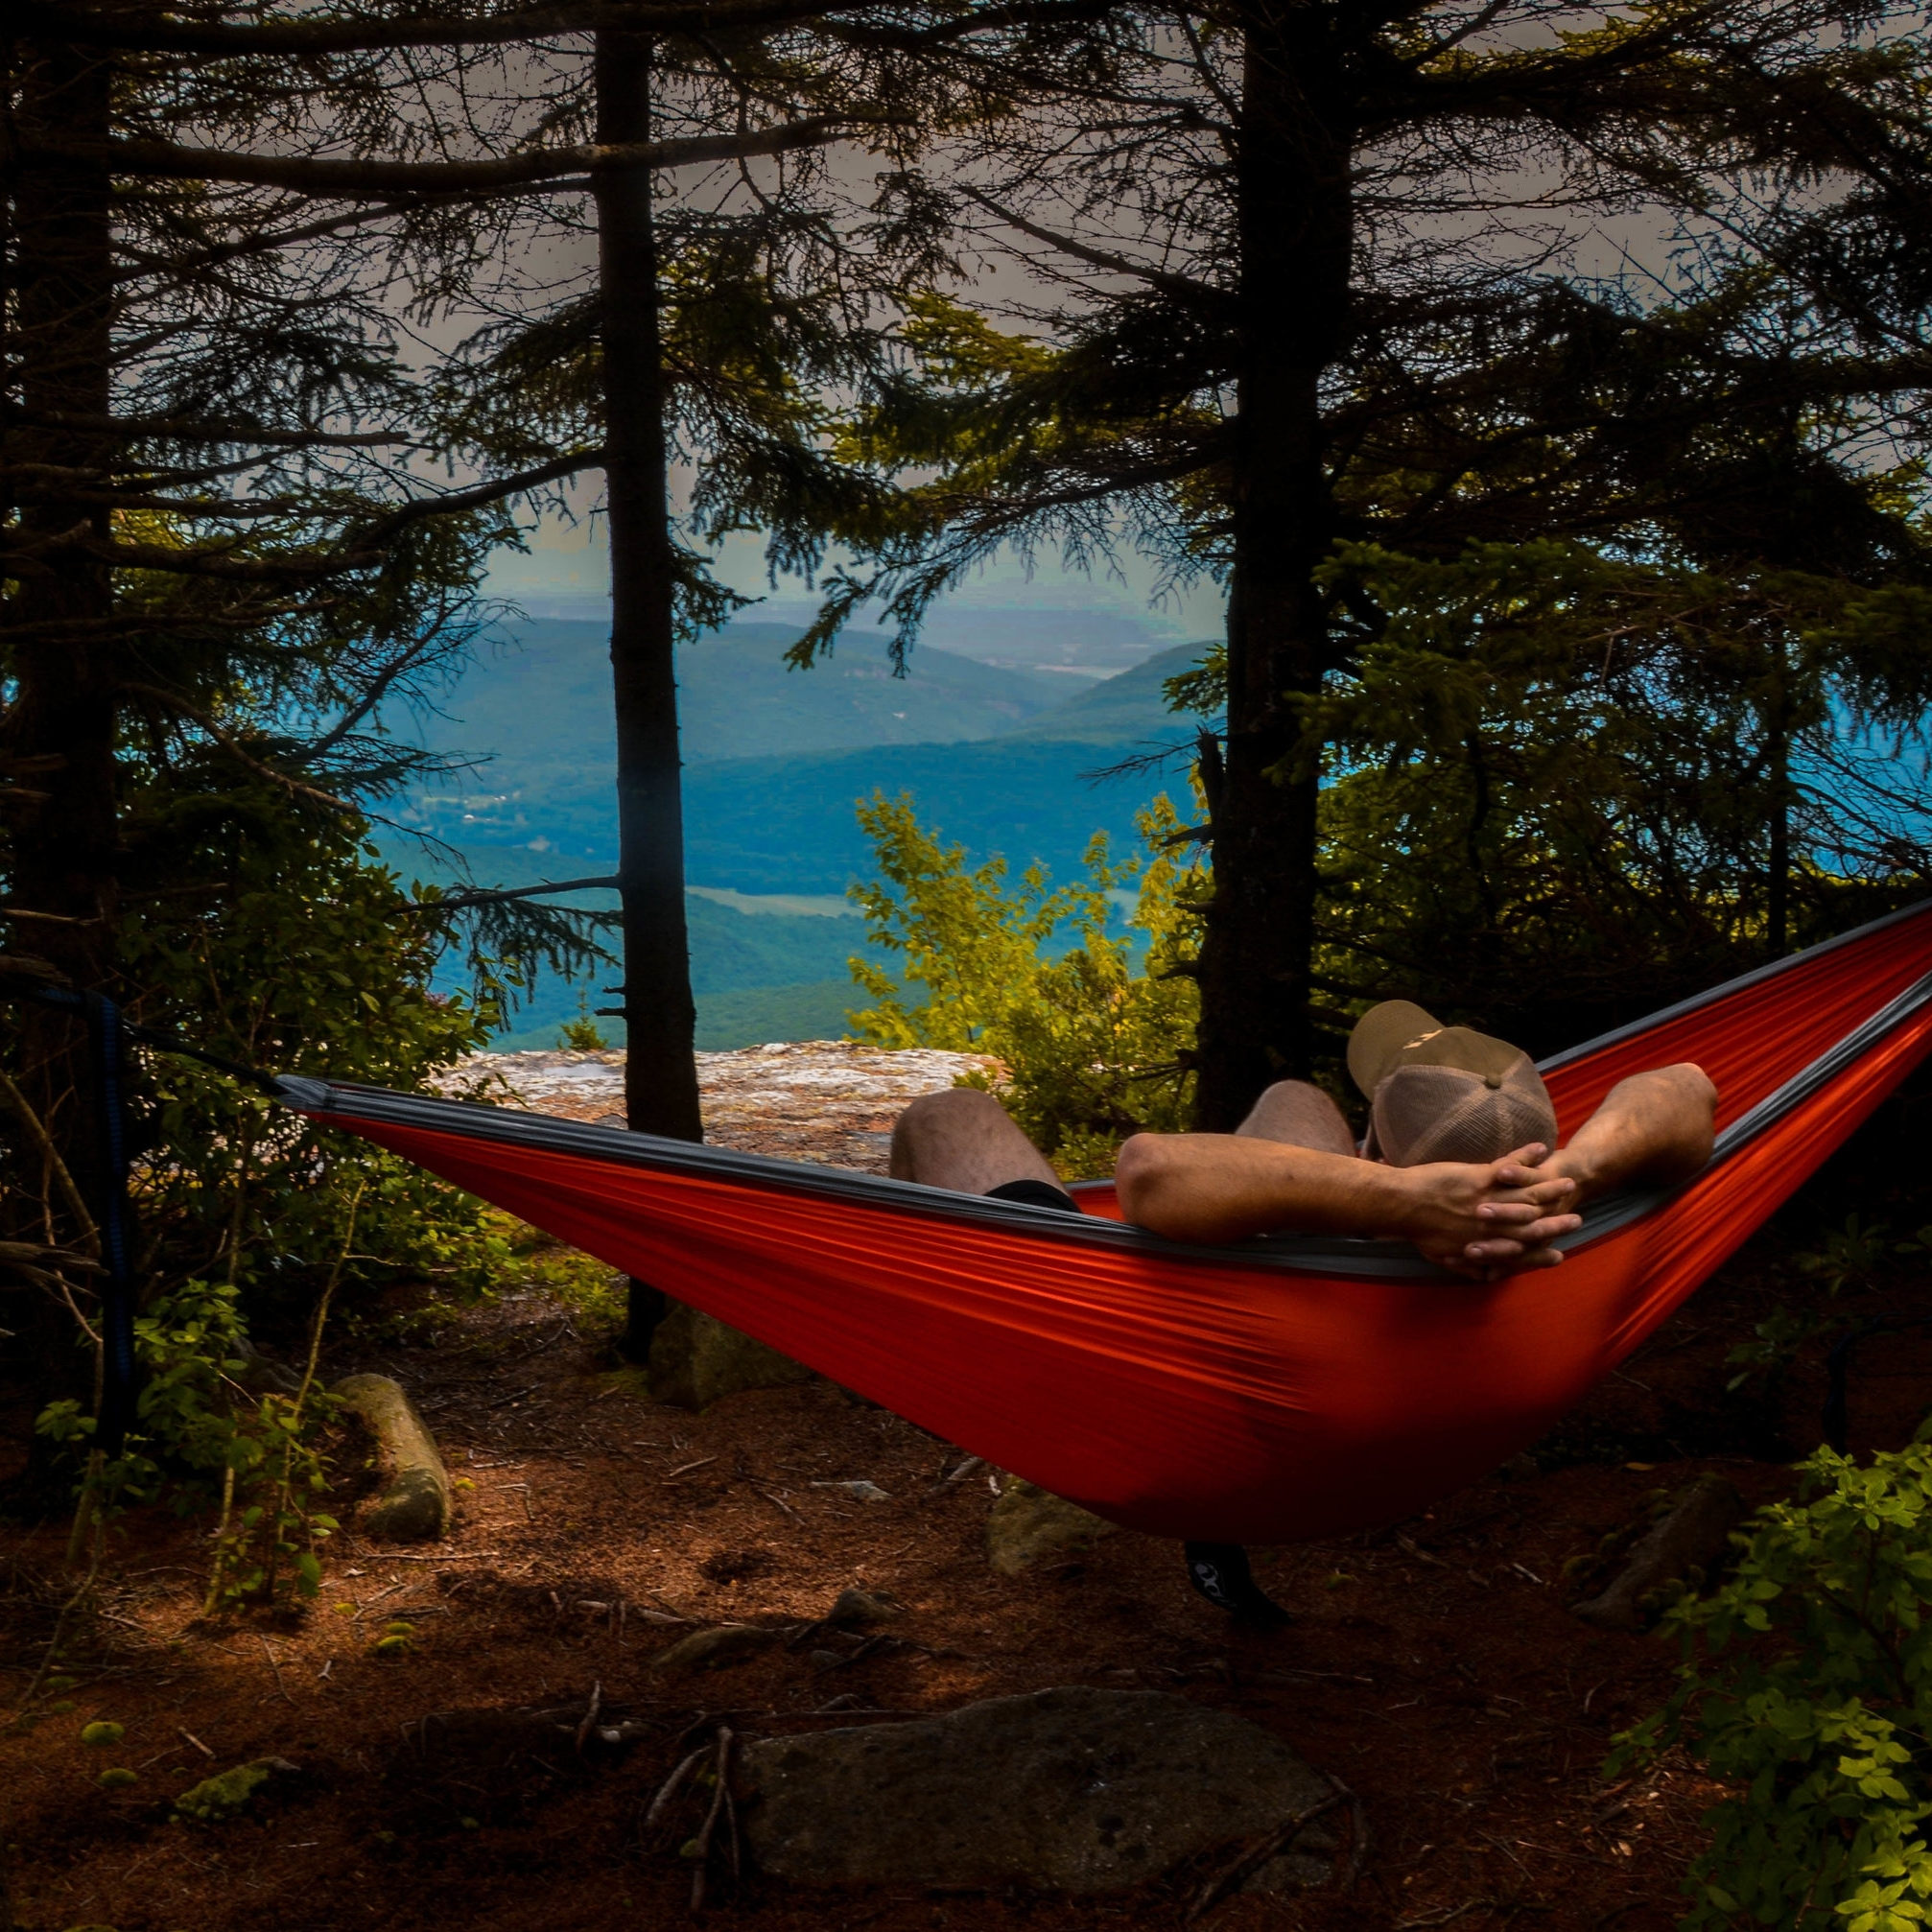 Tyler Pralley enjoying the scenic views of Dolly Sods (by Austin O'Connor)